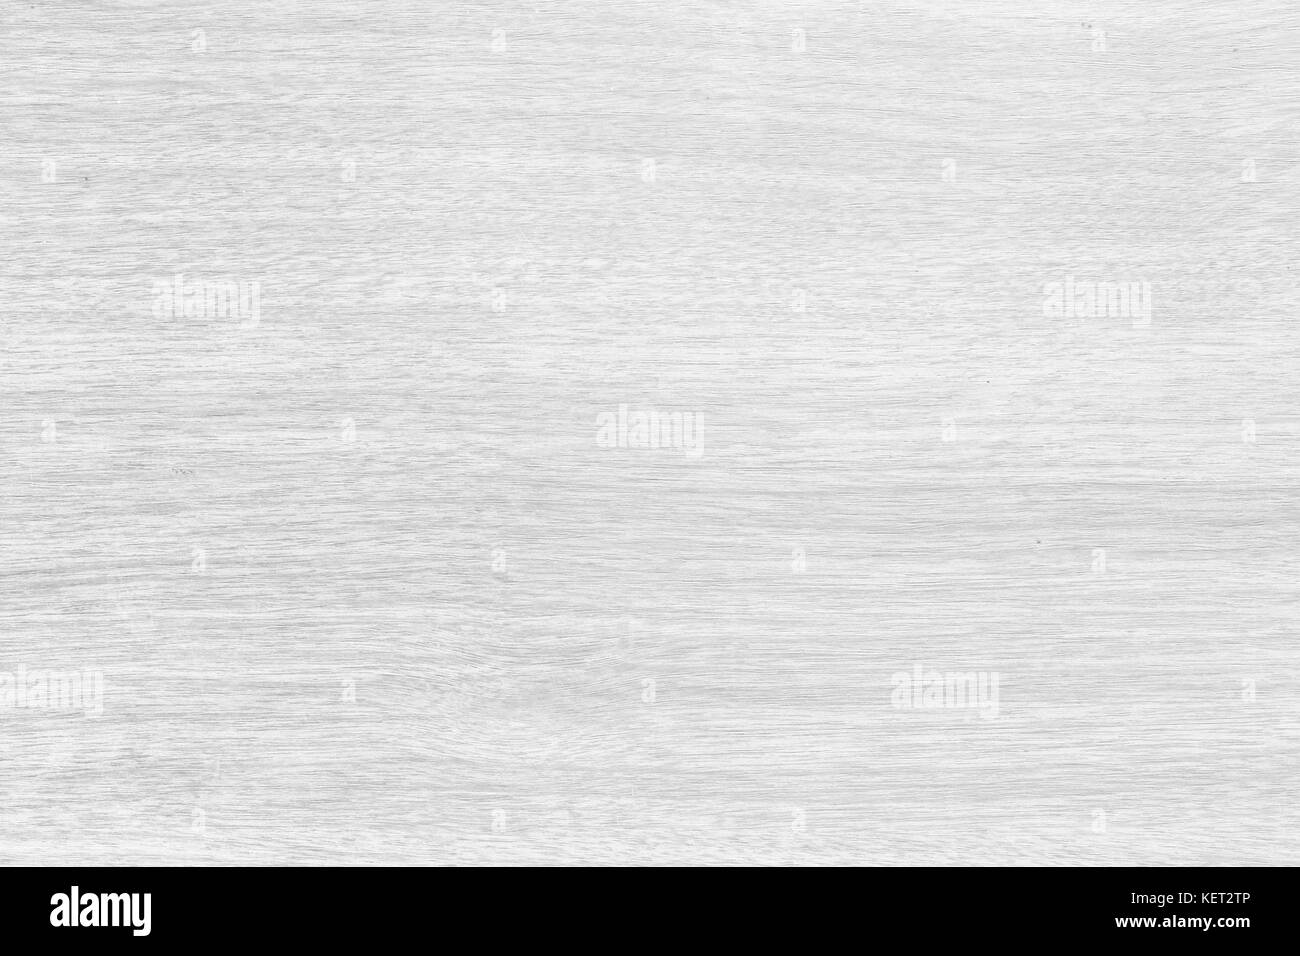 Abstract rustic surface white wood table texture background. Close up of rustic wall made of white wood table planks - Stock Image